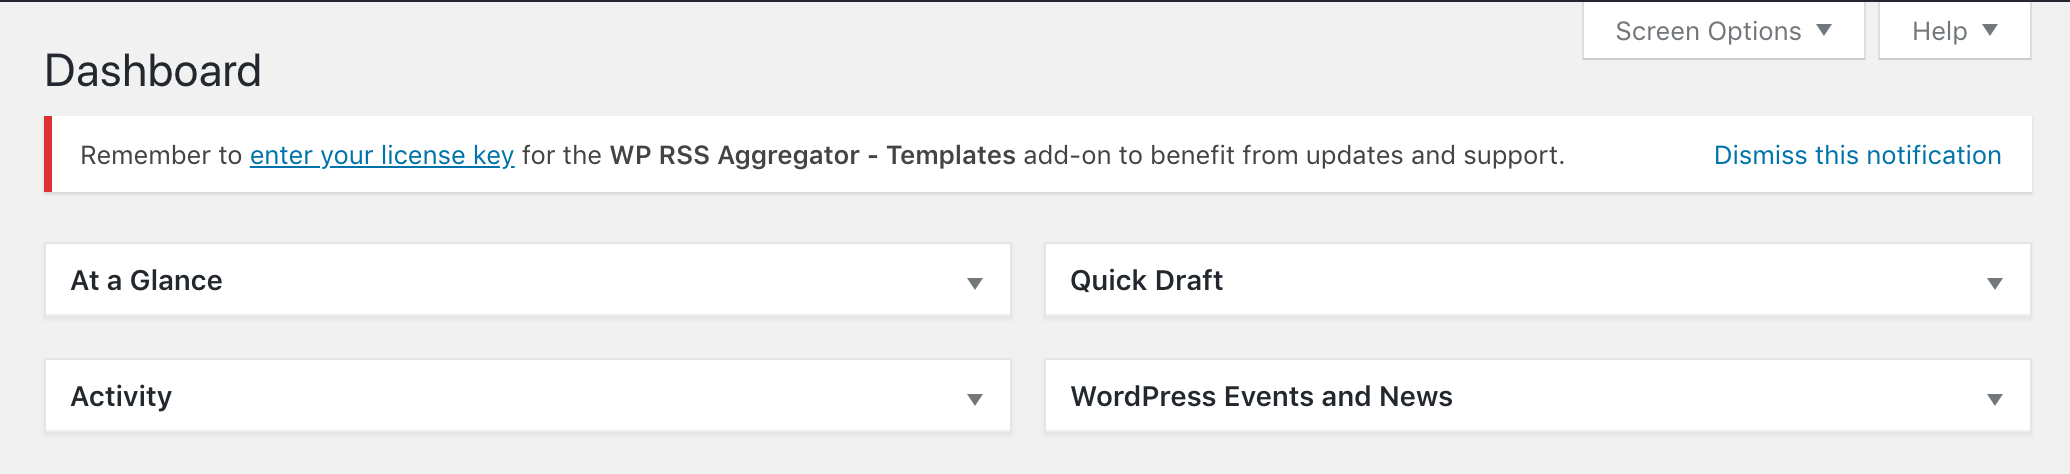 A notification from the Templates add-on to add your license key.